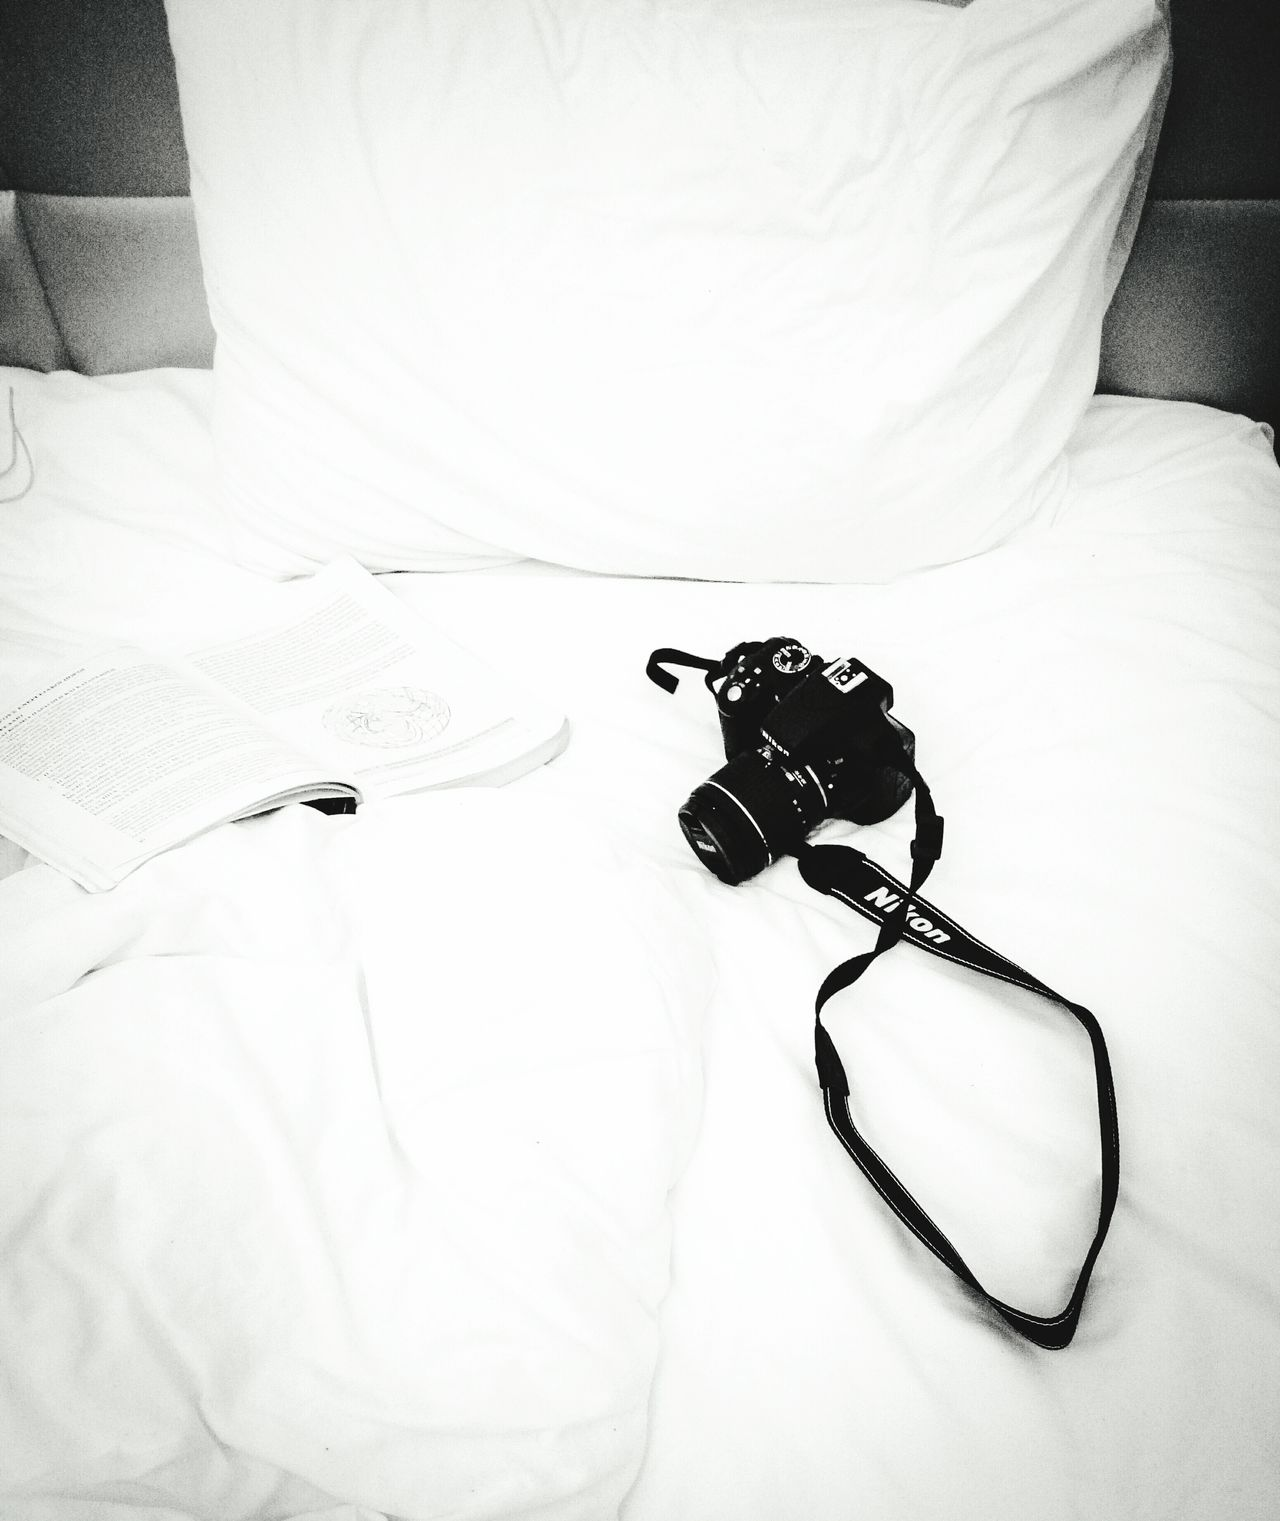 so i manage to buy a decent camera and i ll start using it instead of my phone!so happyLieblingsteil Indoors  Bed Close-up No People Camera Book Studying Chemistry Camera - Photographic Equipment My New Love ♡ Relaxing Moments Hotel Room Traveling